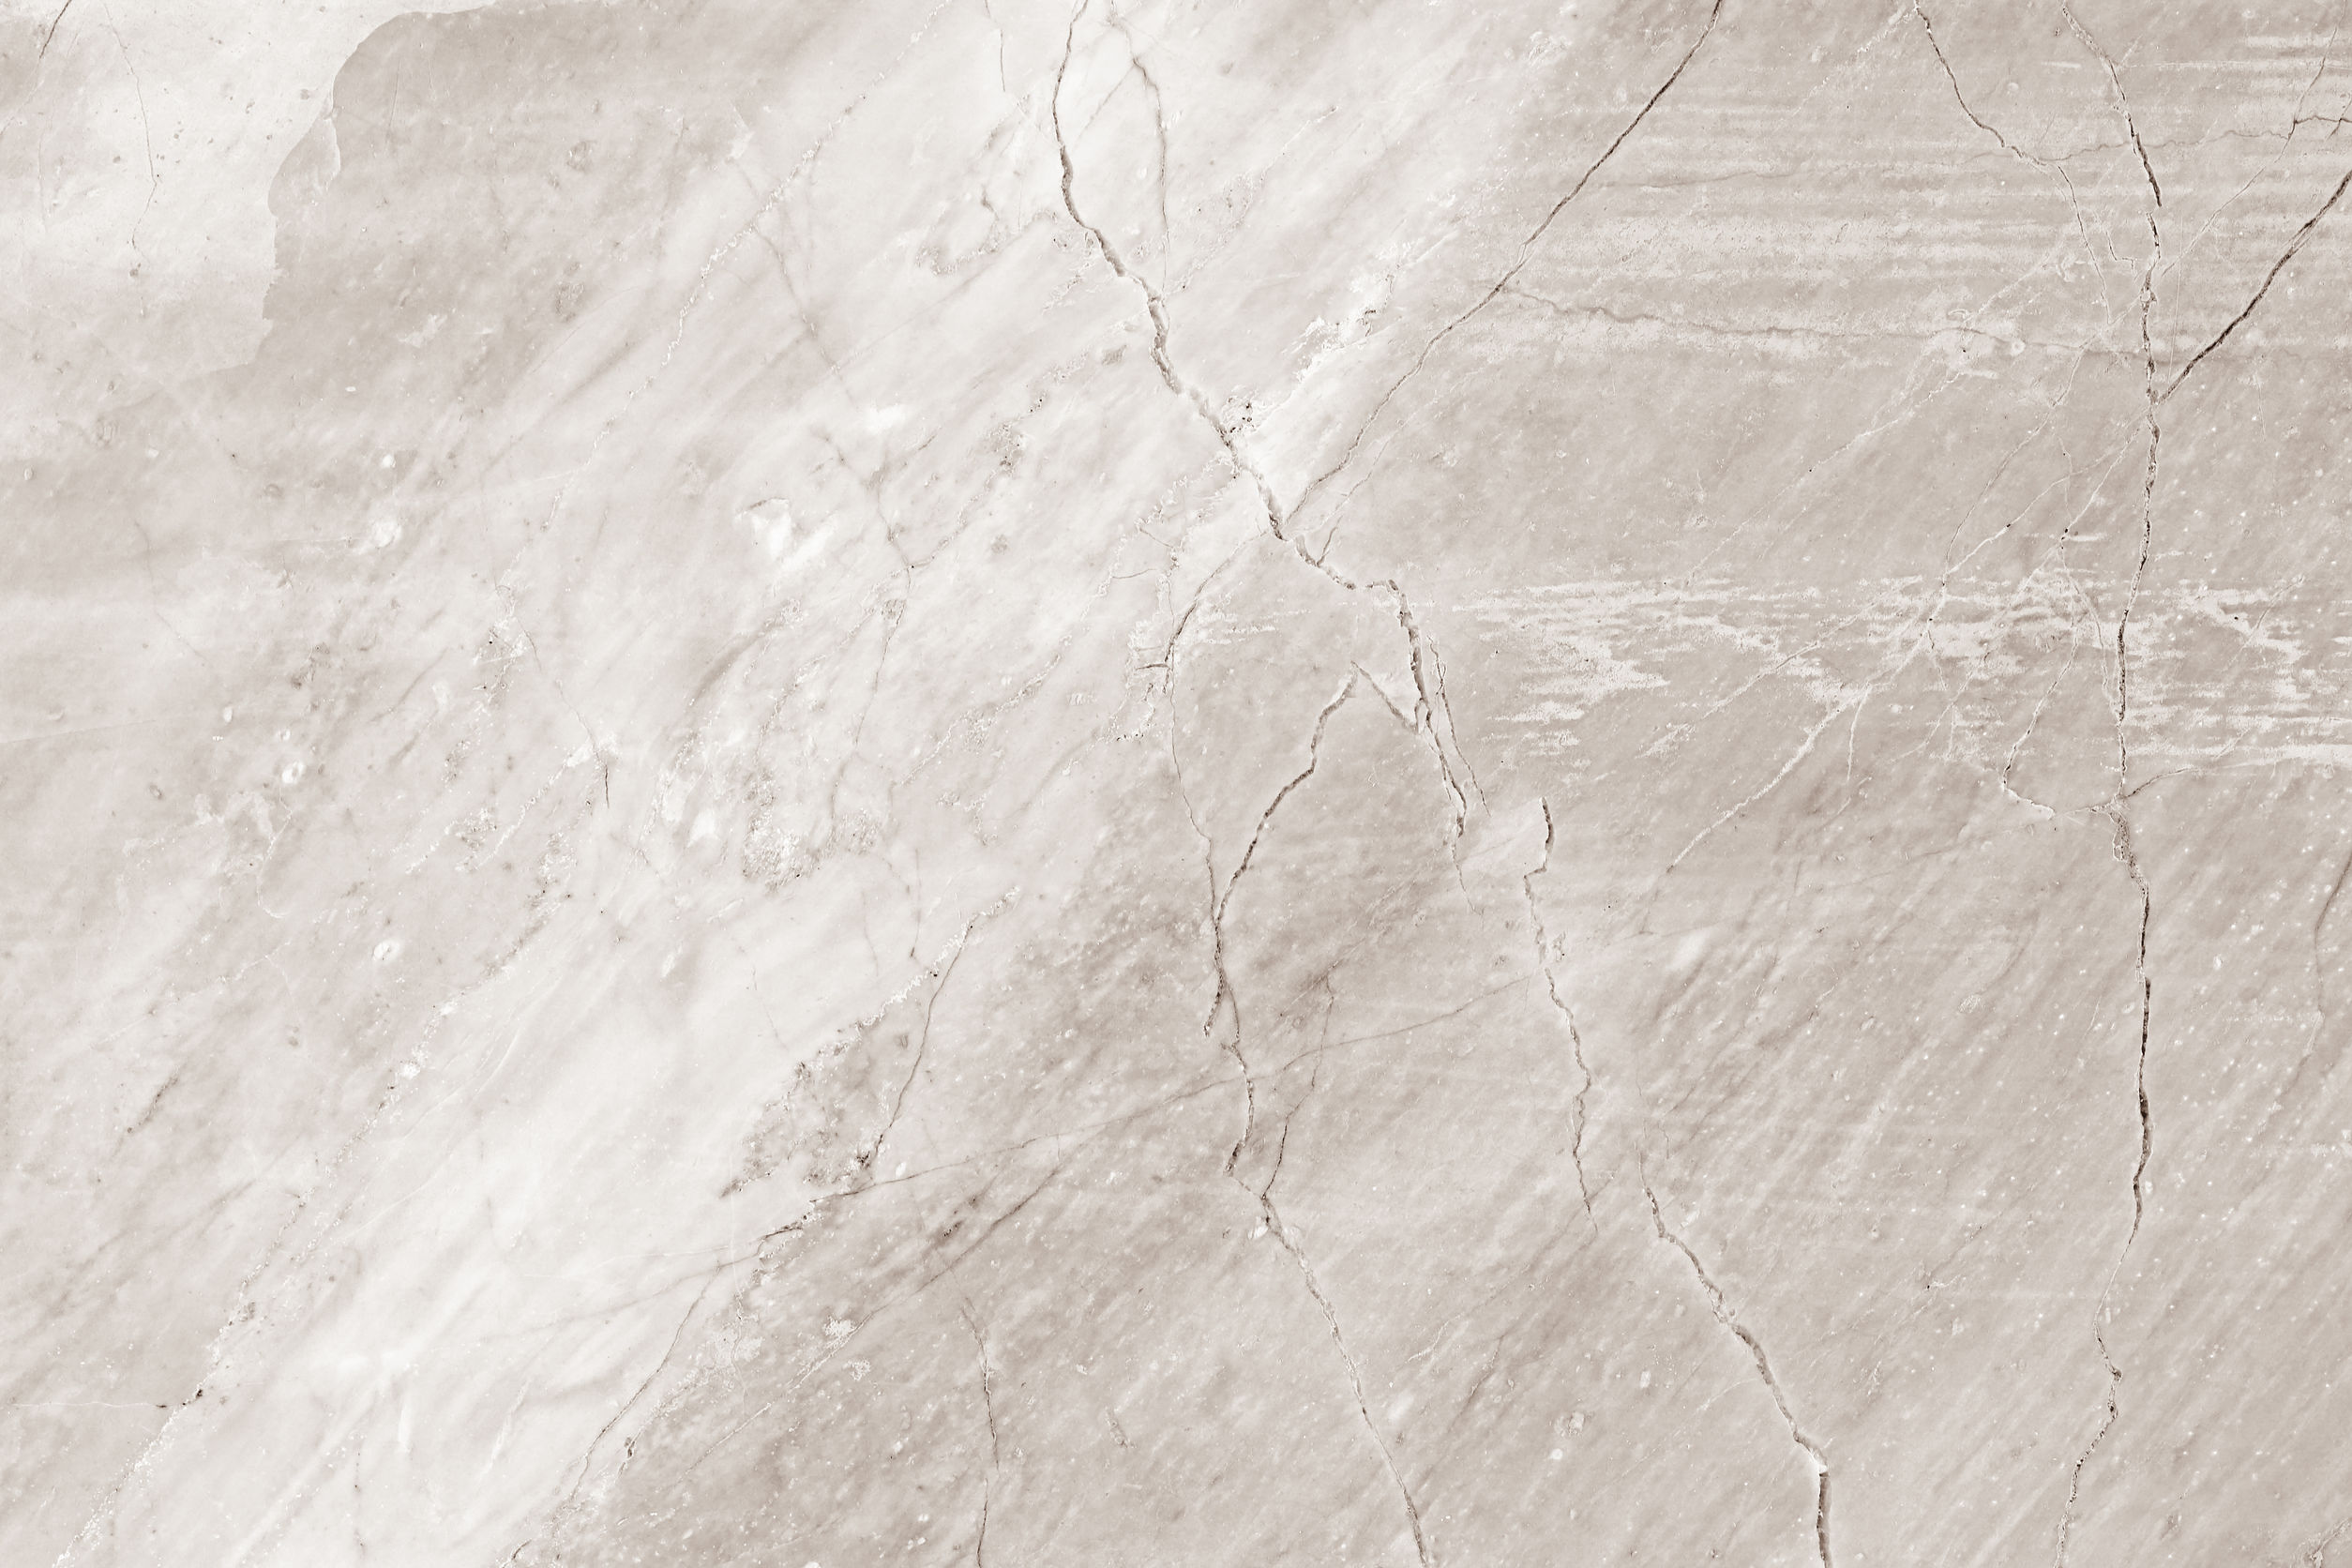 Crack to Square One: How to Deal with Damaged Stone - Post